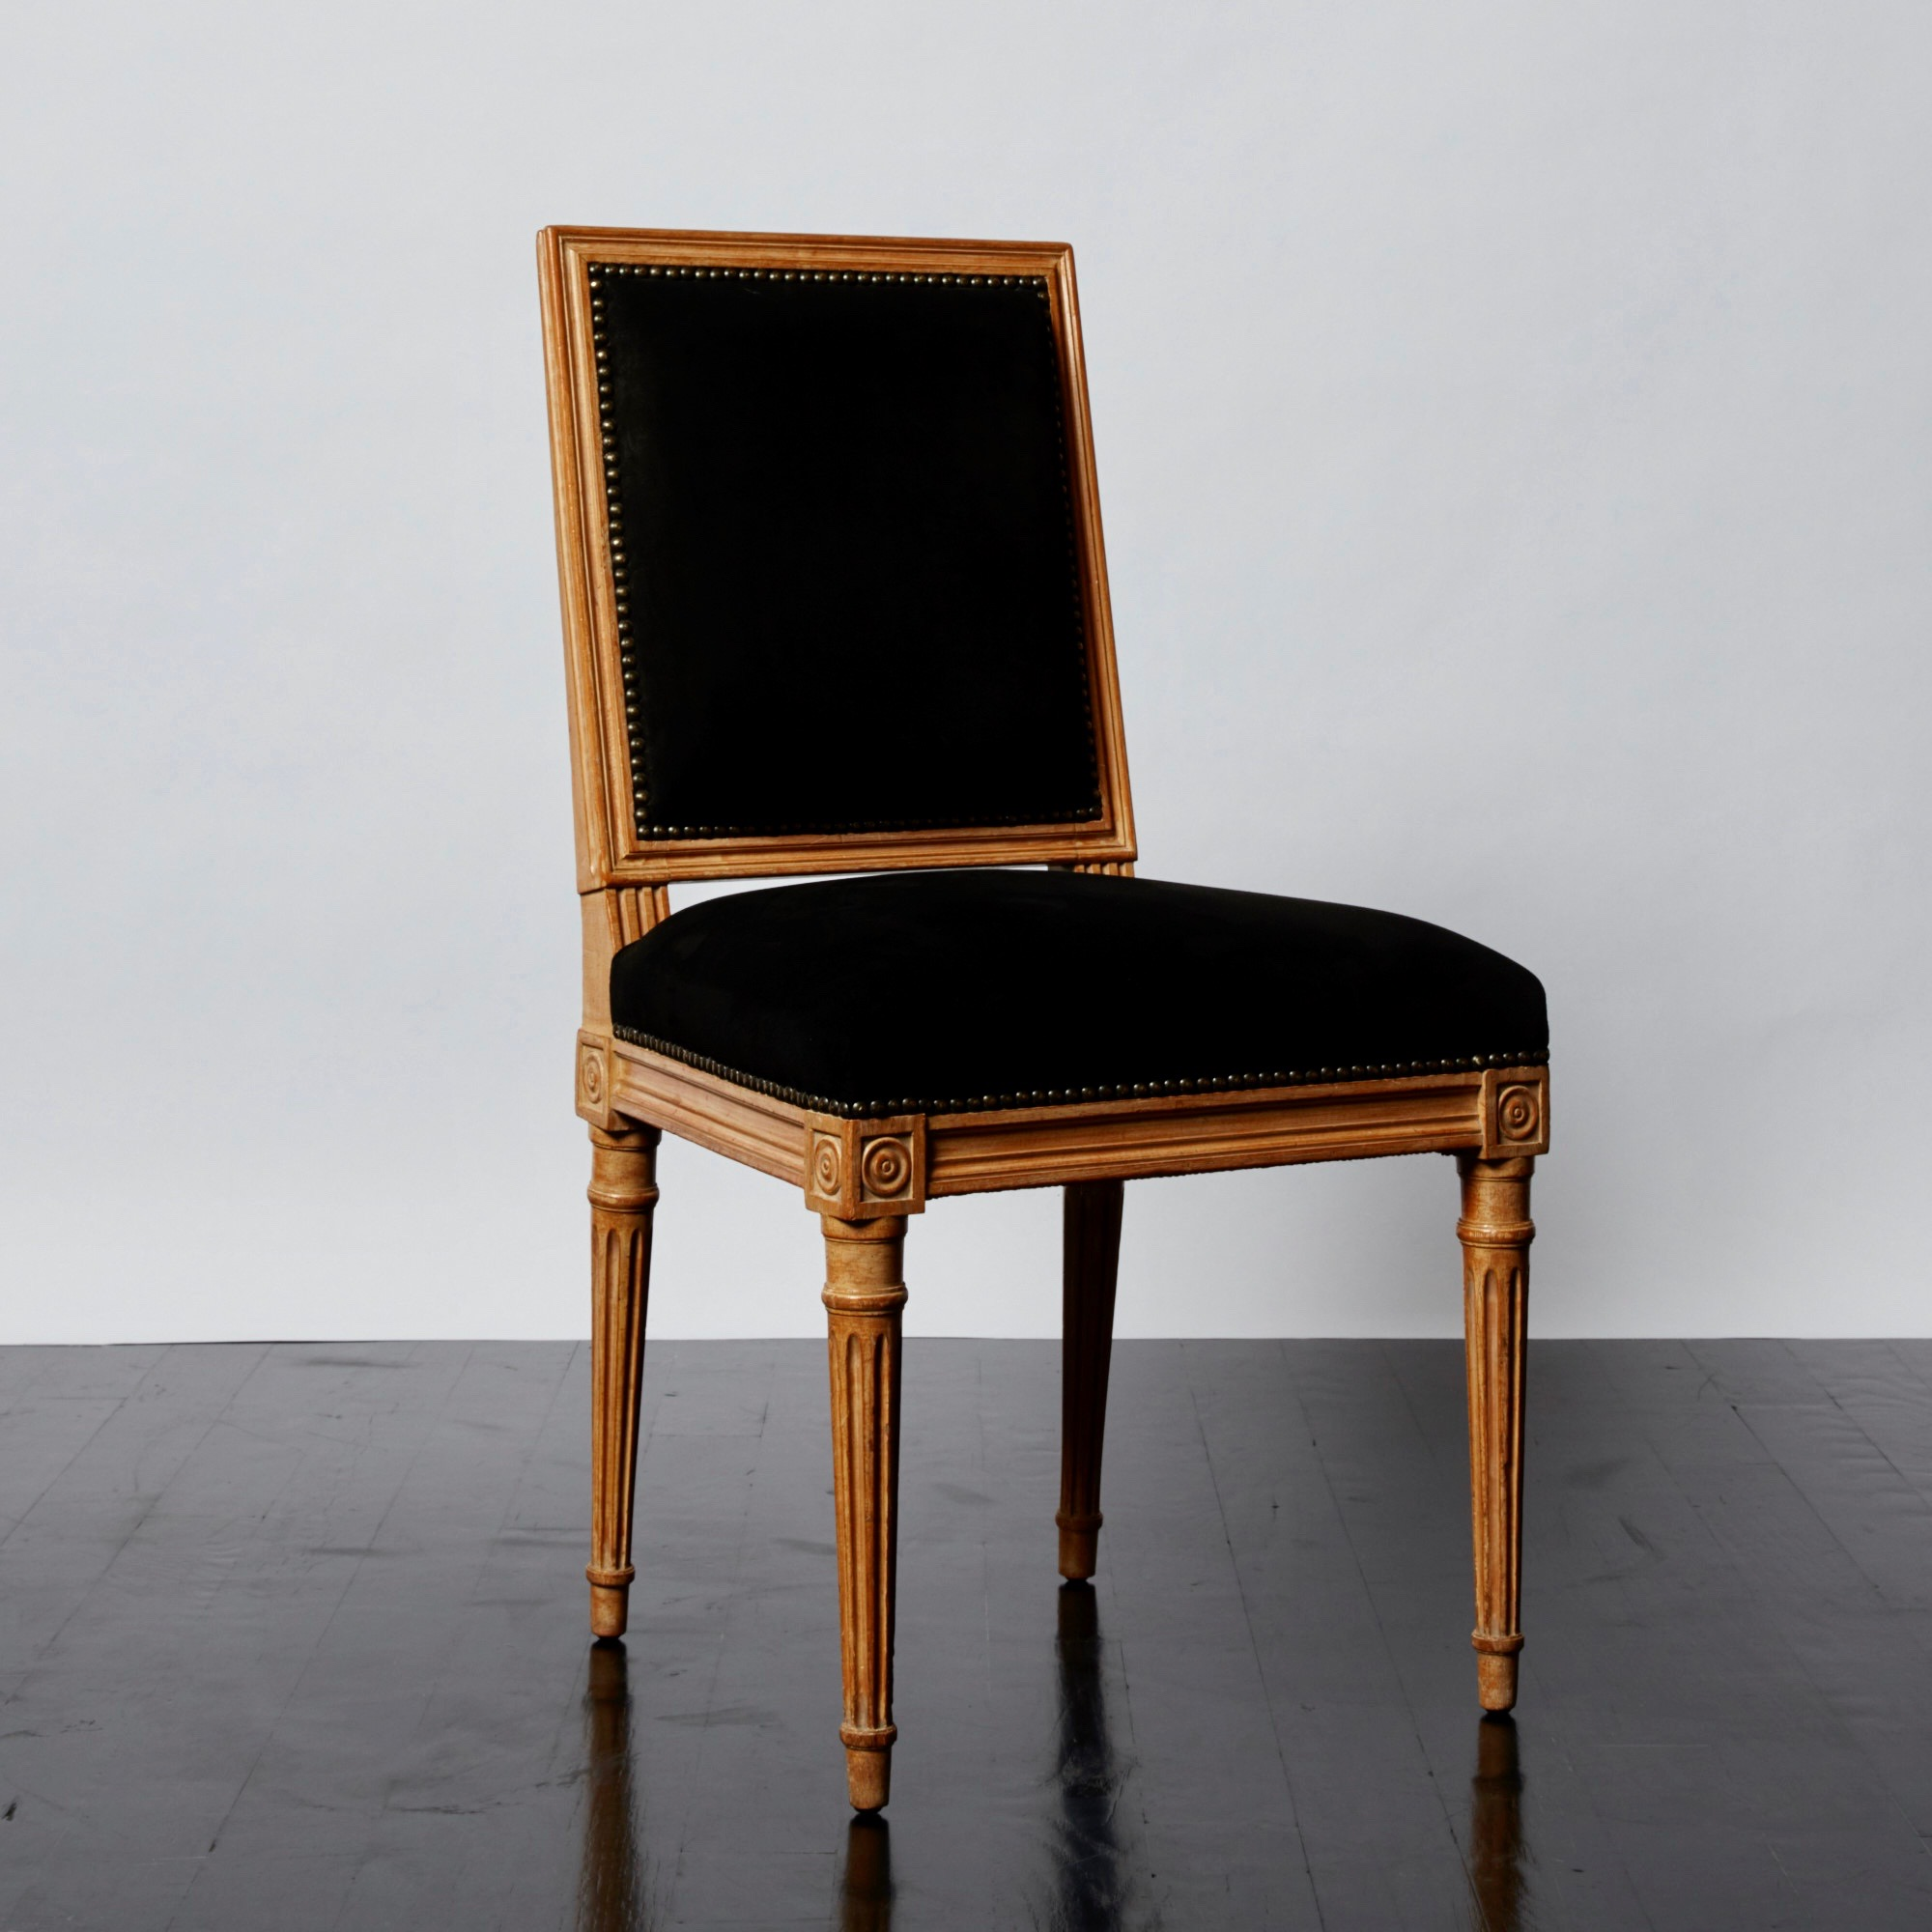 antony_todd_chair_11.jpg